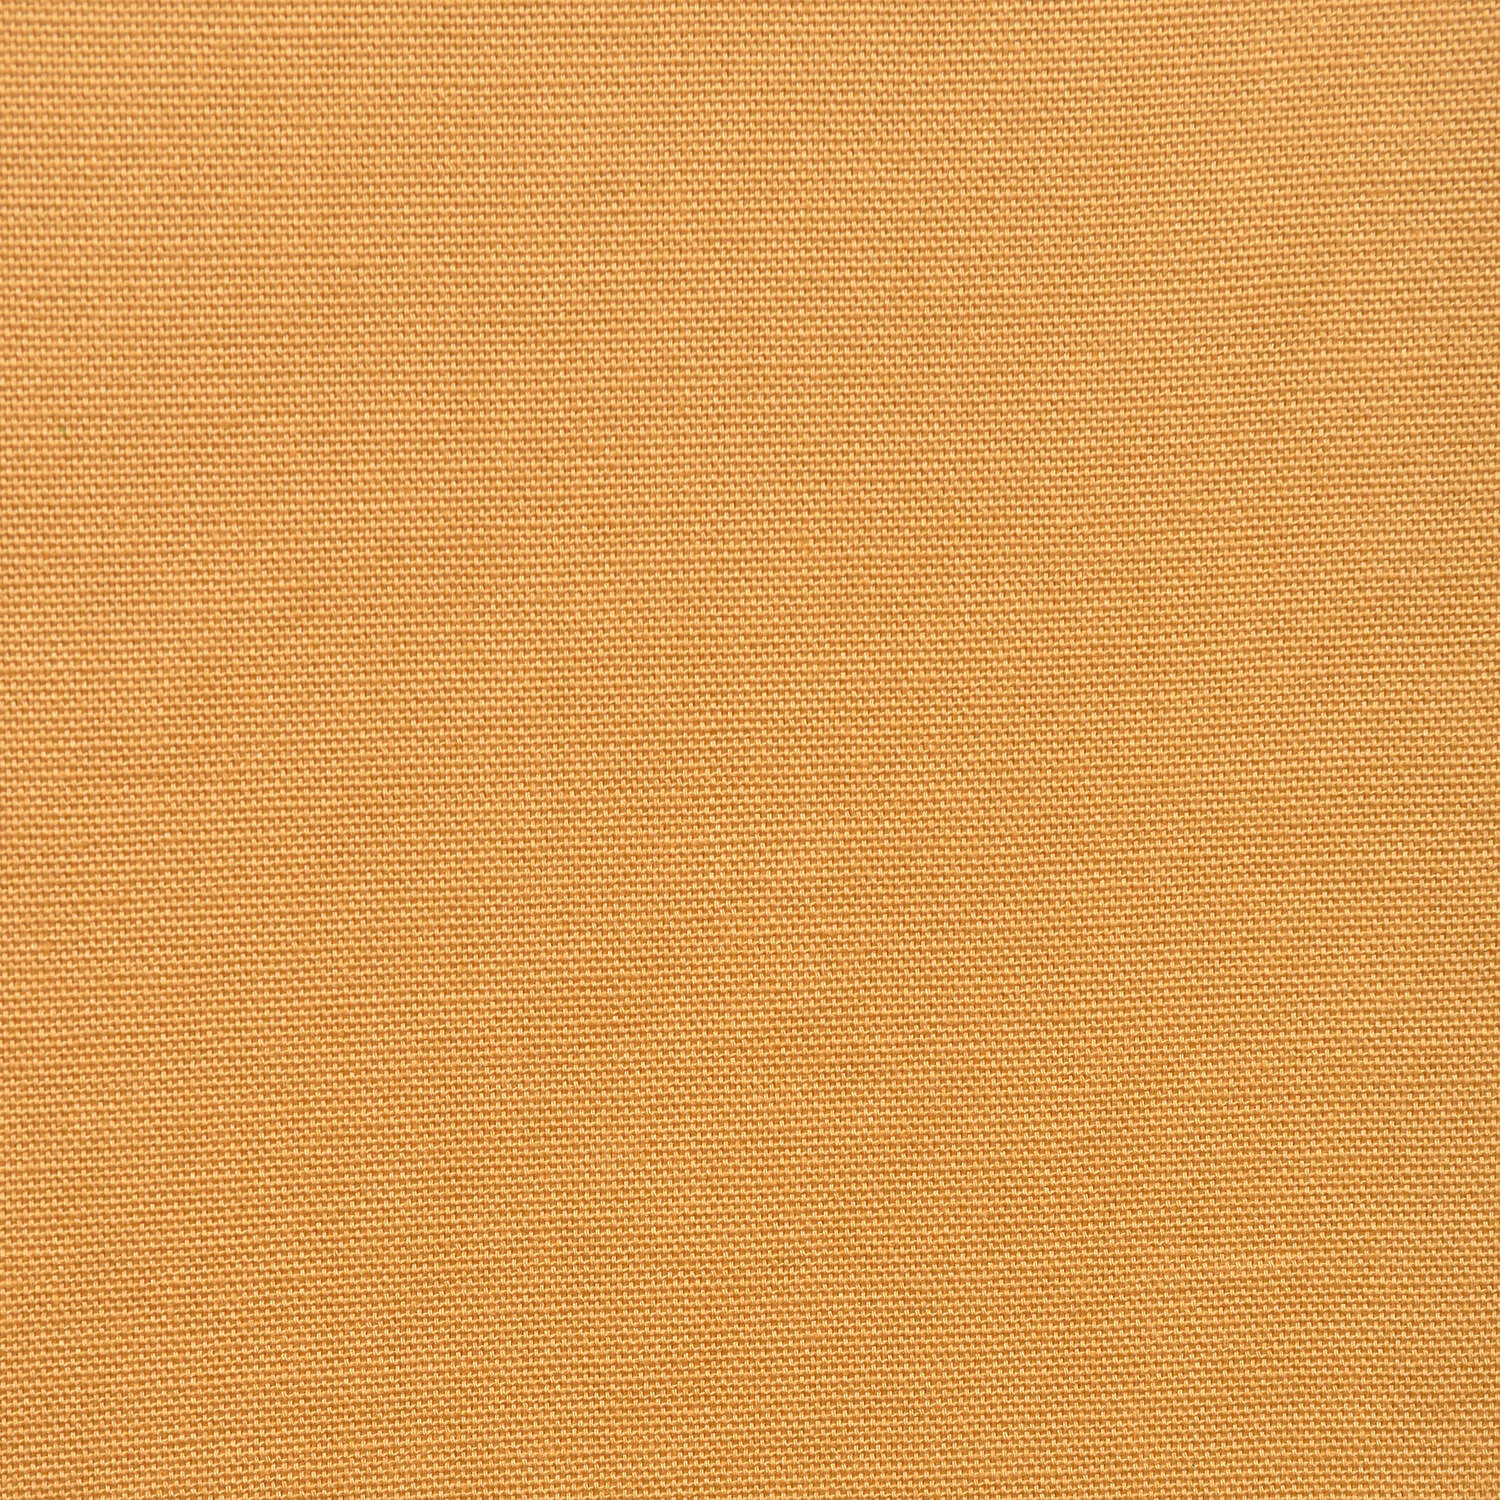 Spicy Mustard Solid Cotton Swatch